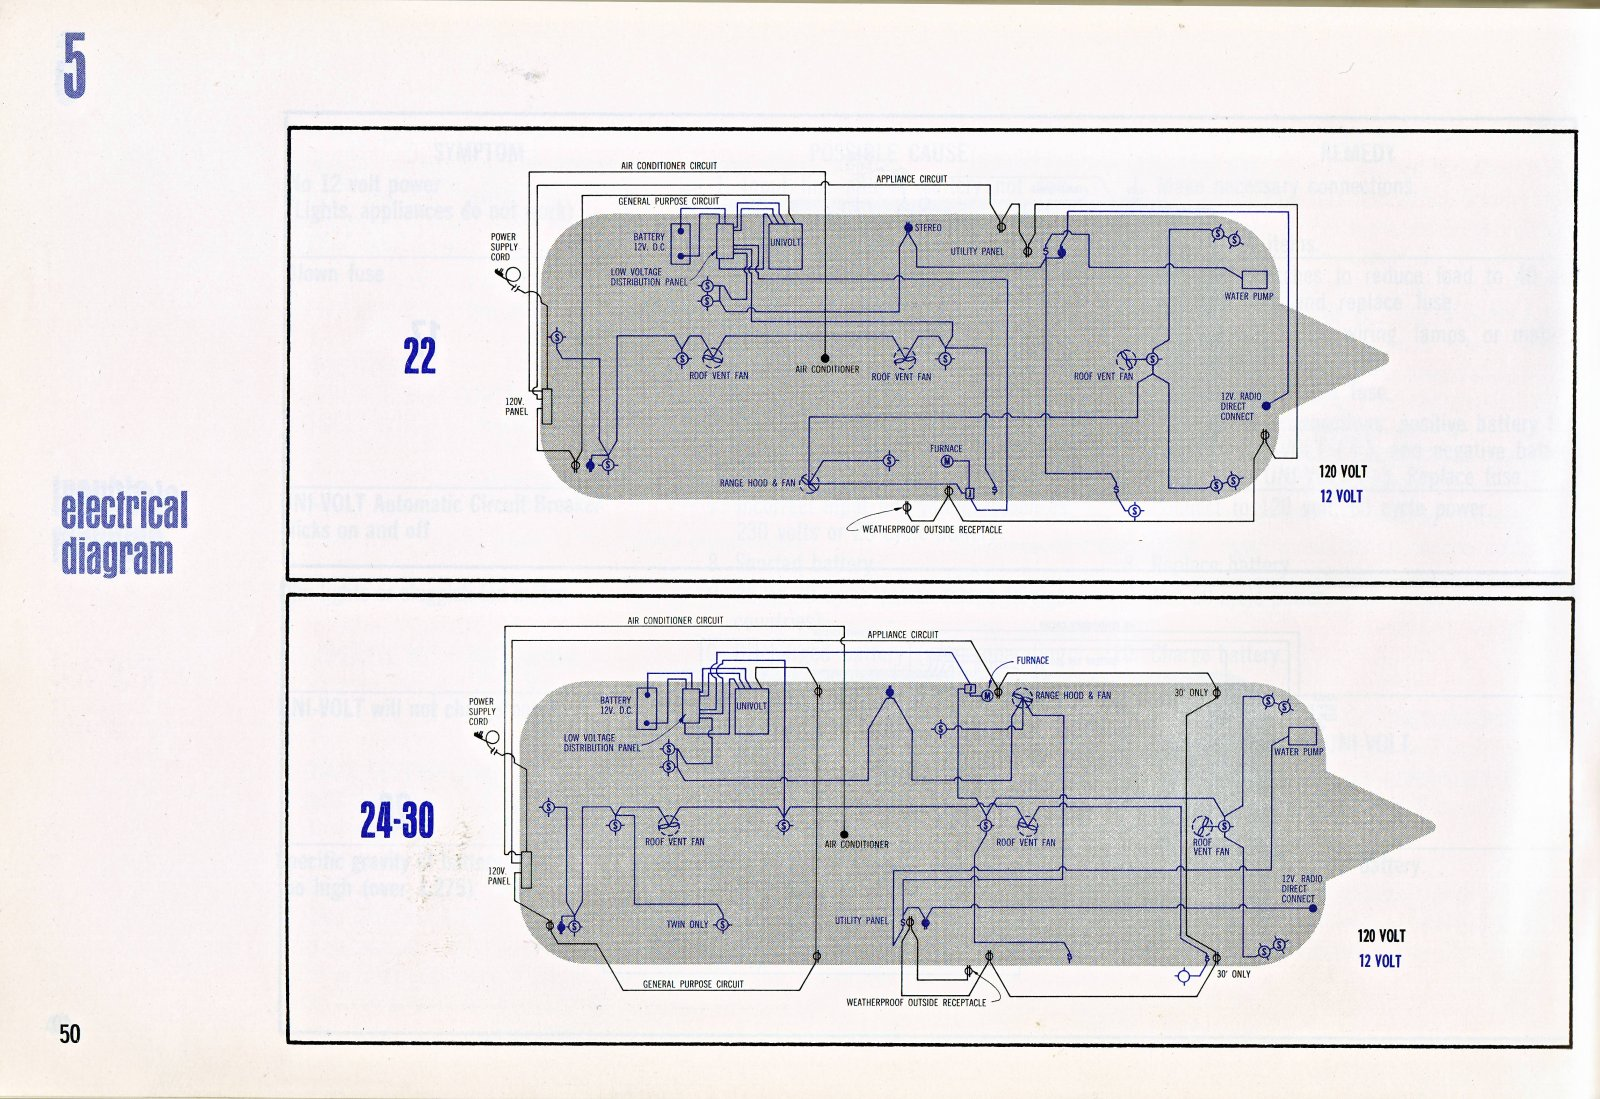 Vintage Airstream Wiring Schematics Forums 1966 Gmc Diagram Starting Click Image For Larger Version Name Manual 50 Views 8426 Size